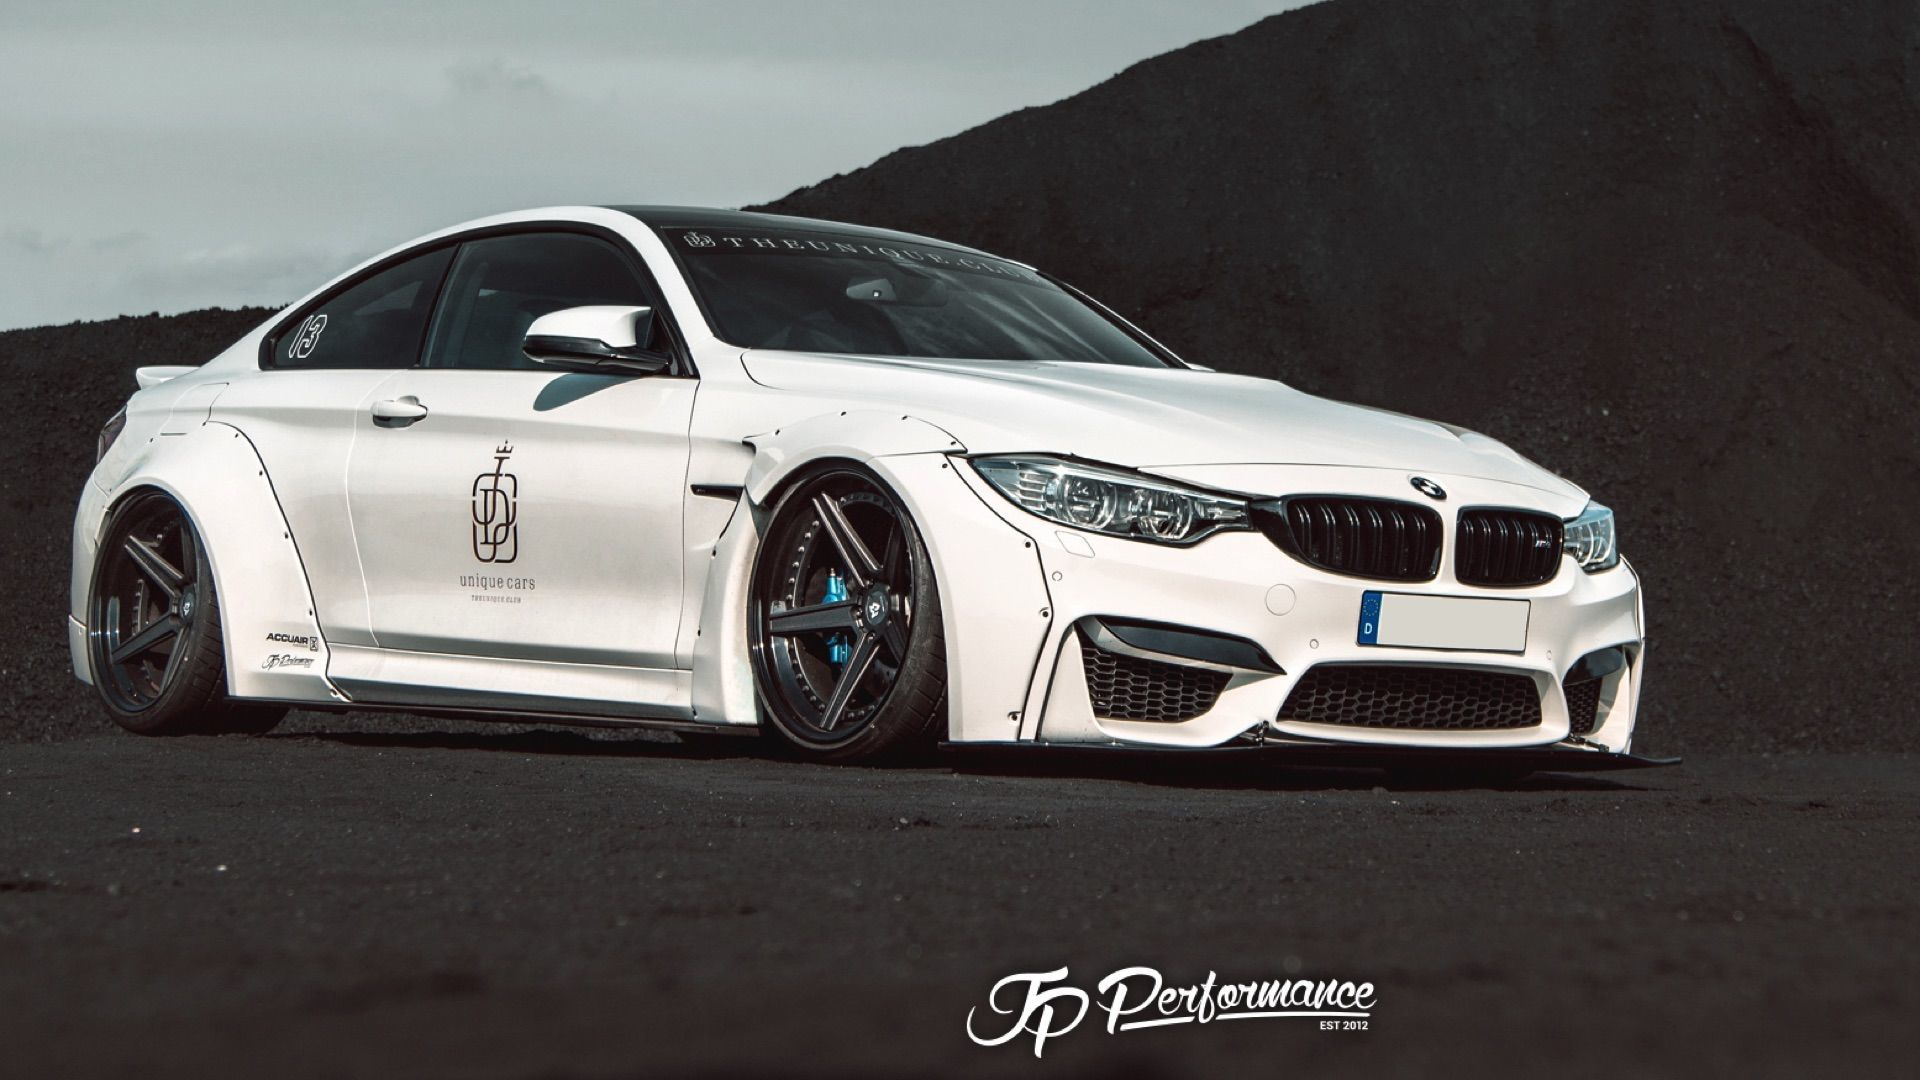 bmw m4 felgen mbdesign kv1 3 liberty walk. Black Bedroom Furniture Sets. Home Design Ideas